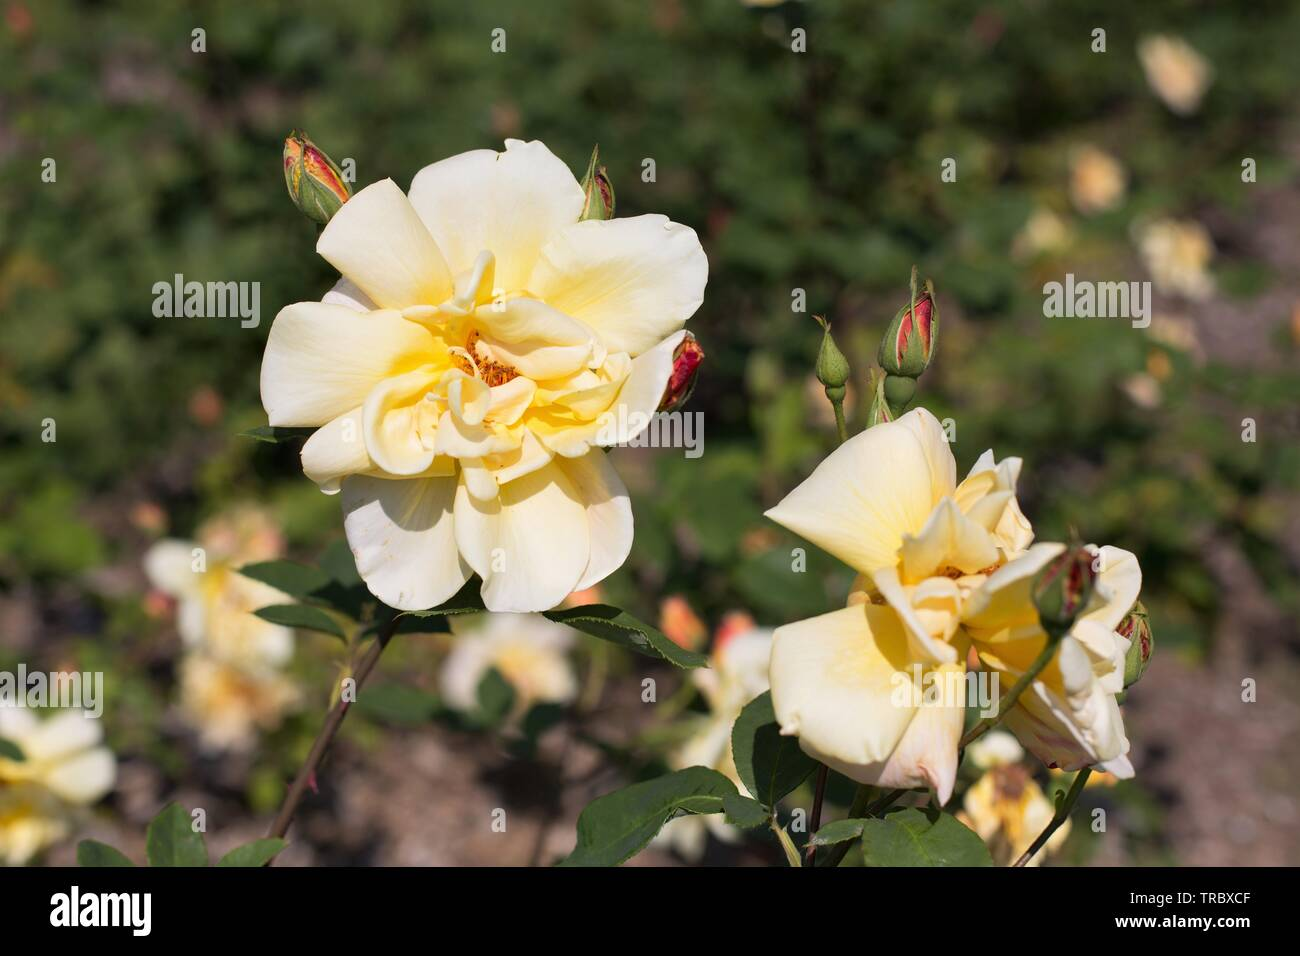 Sister Therese roses at Bush's Pasture Park in Salem, Oregon, USA. - Stock Image